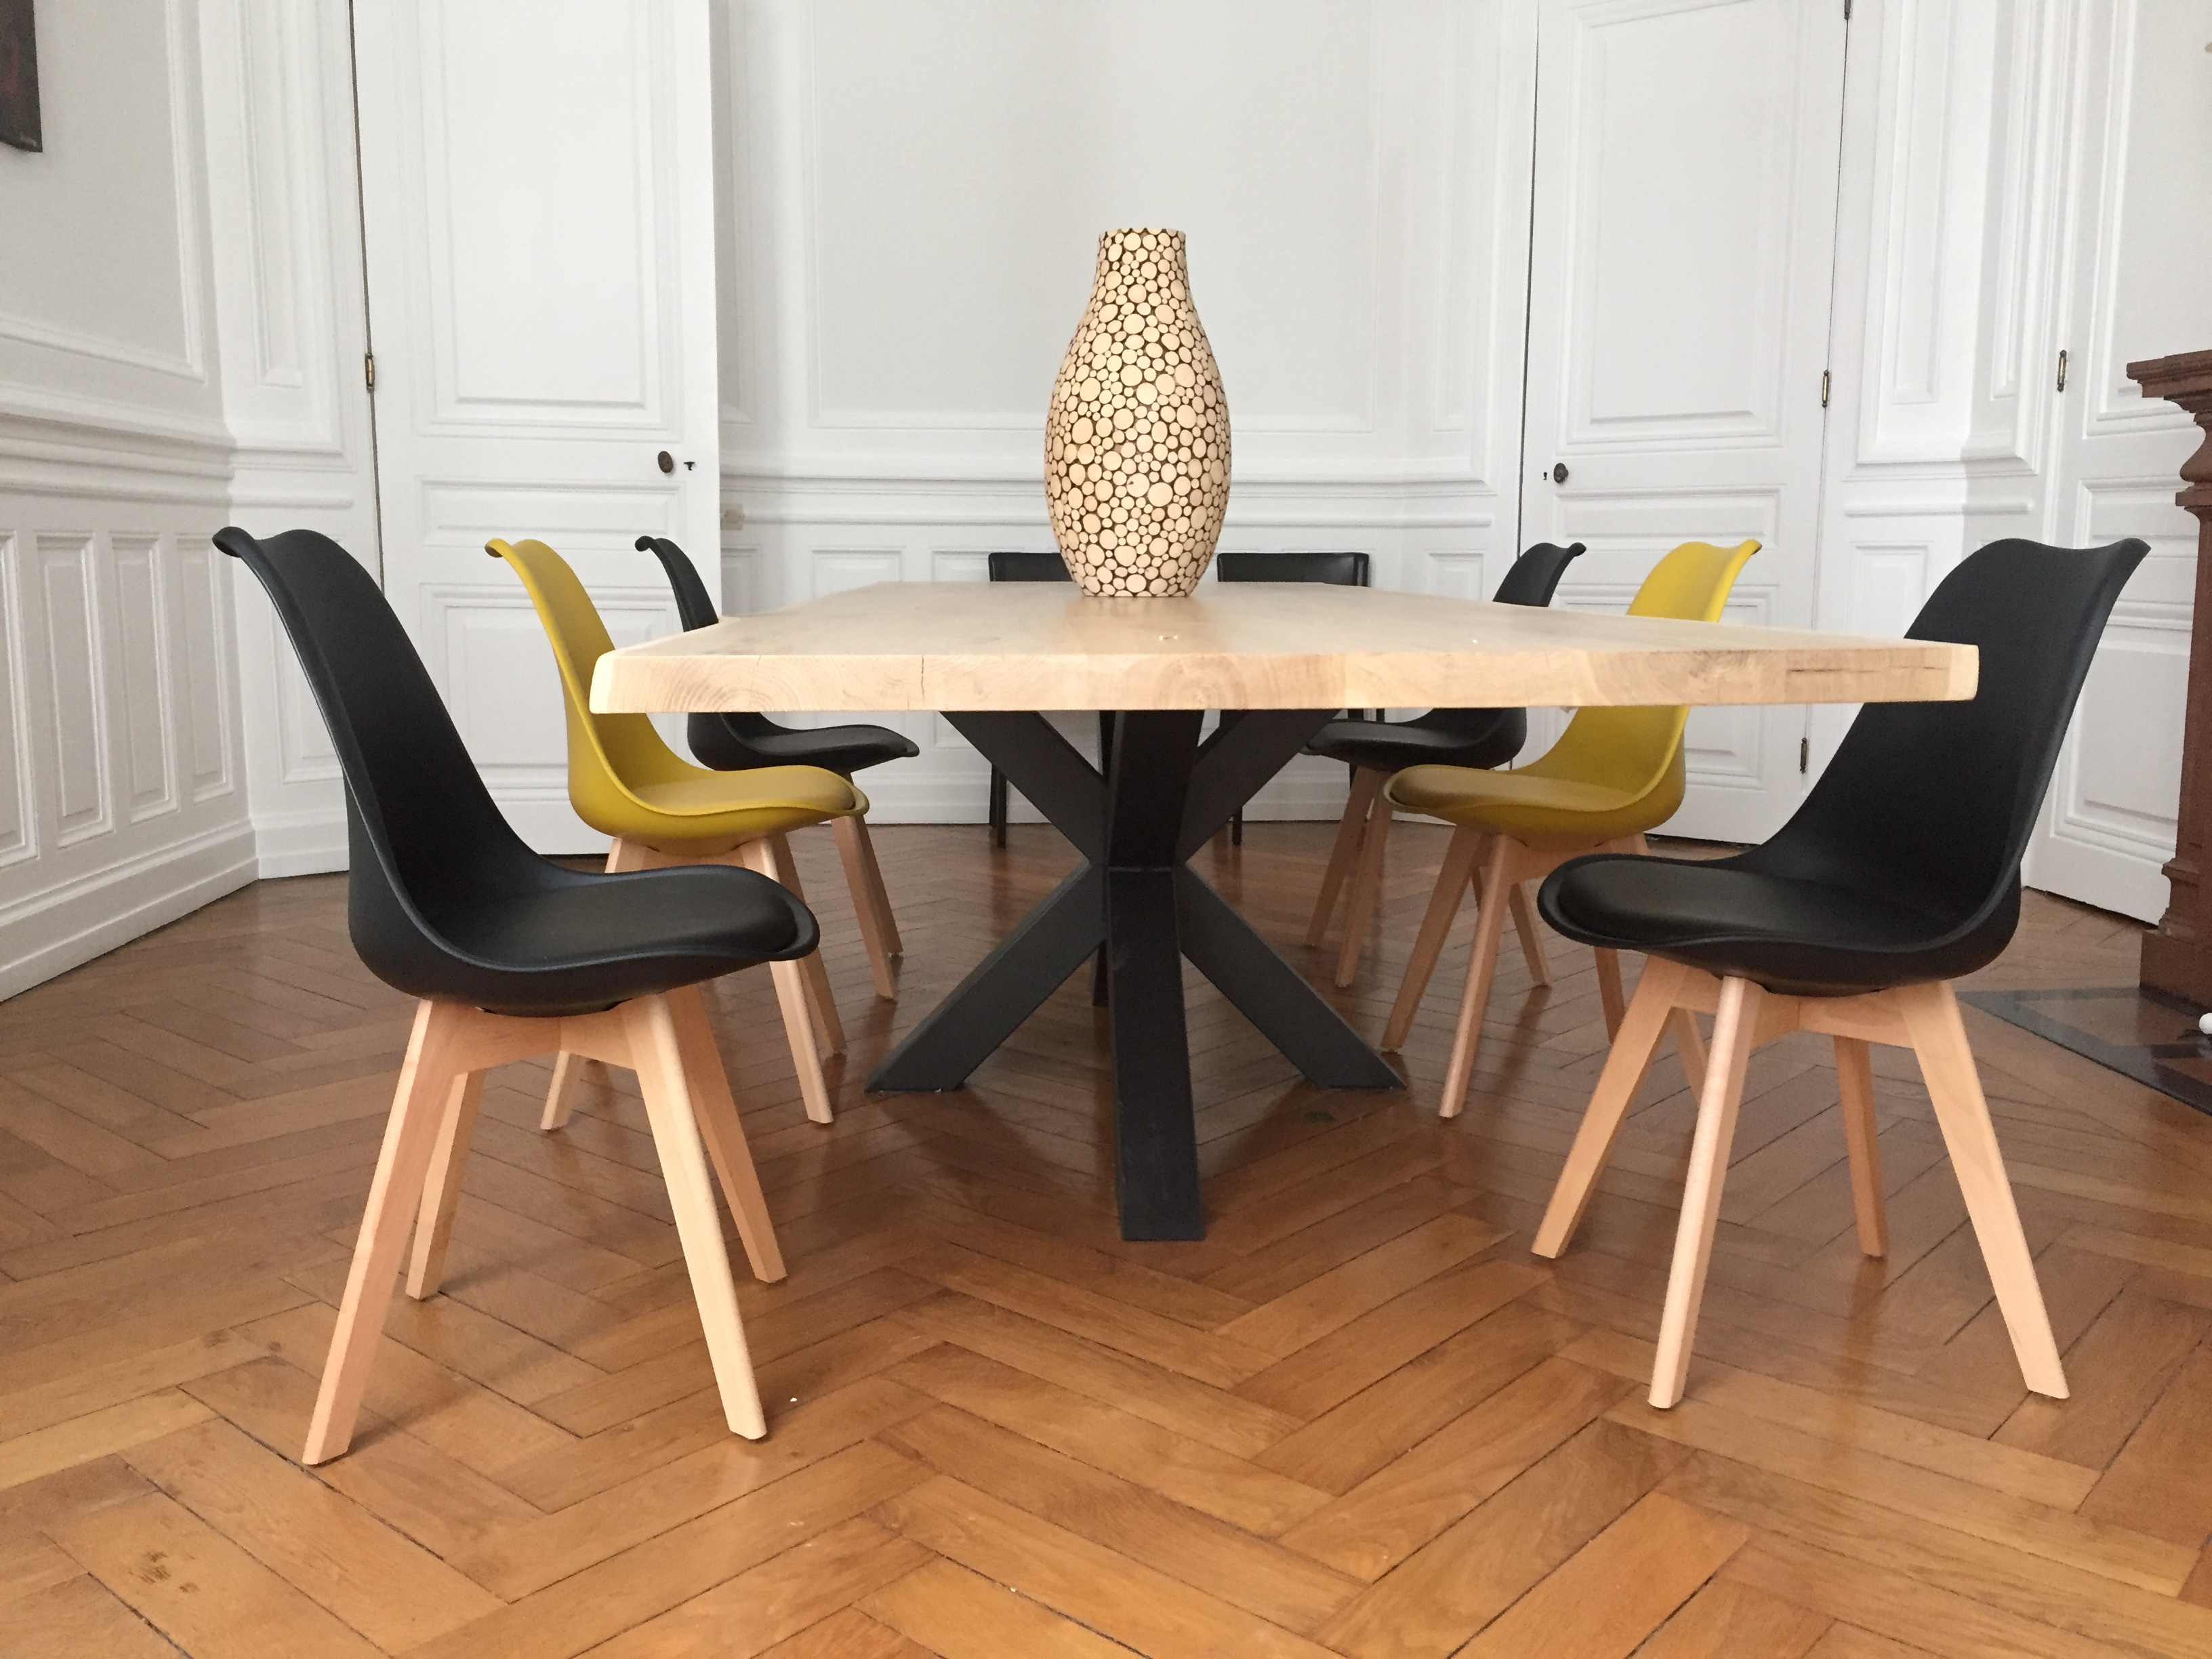 Table bois m tal pied central design industriel - Table design pied central ...